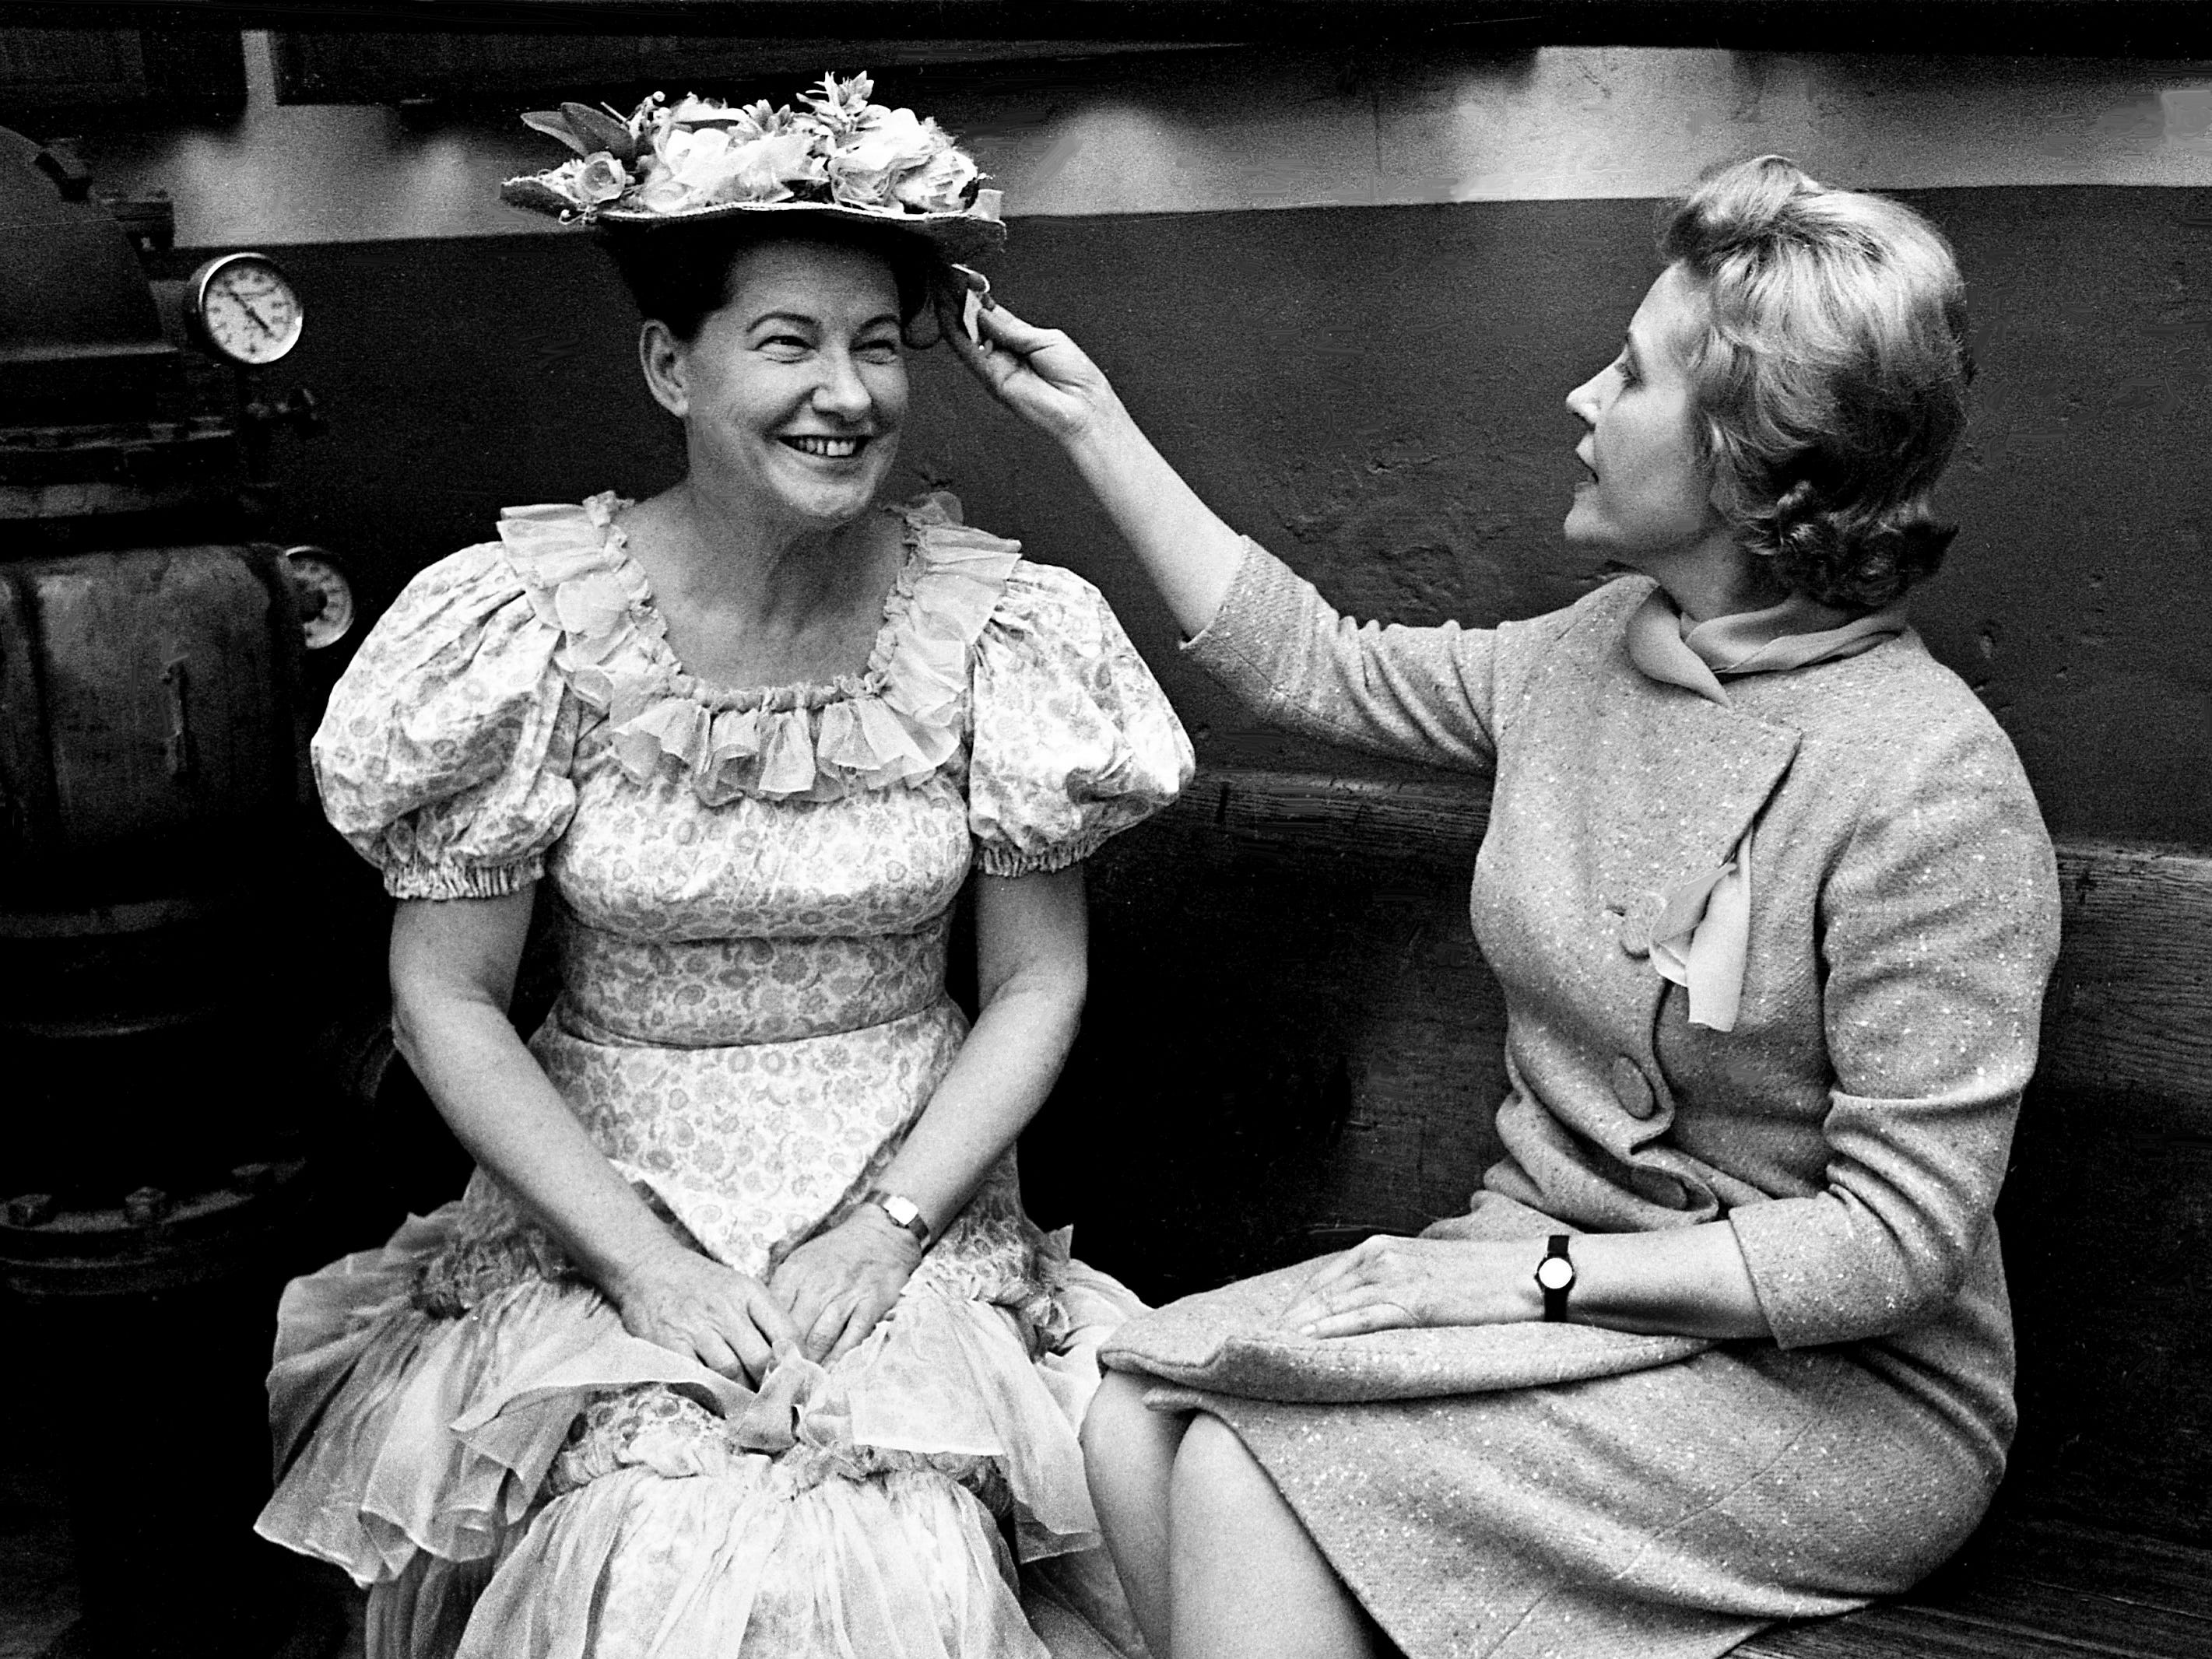 Soprano Signe Quale Dawson, right, of Tennessee's unique traveling opera company, checks out the price tag on the hat of Grand Ole Opry leading lady Minnie Pearl during a visit to the Ryman Auditorium on Jan. 29, 1969.